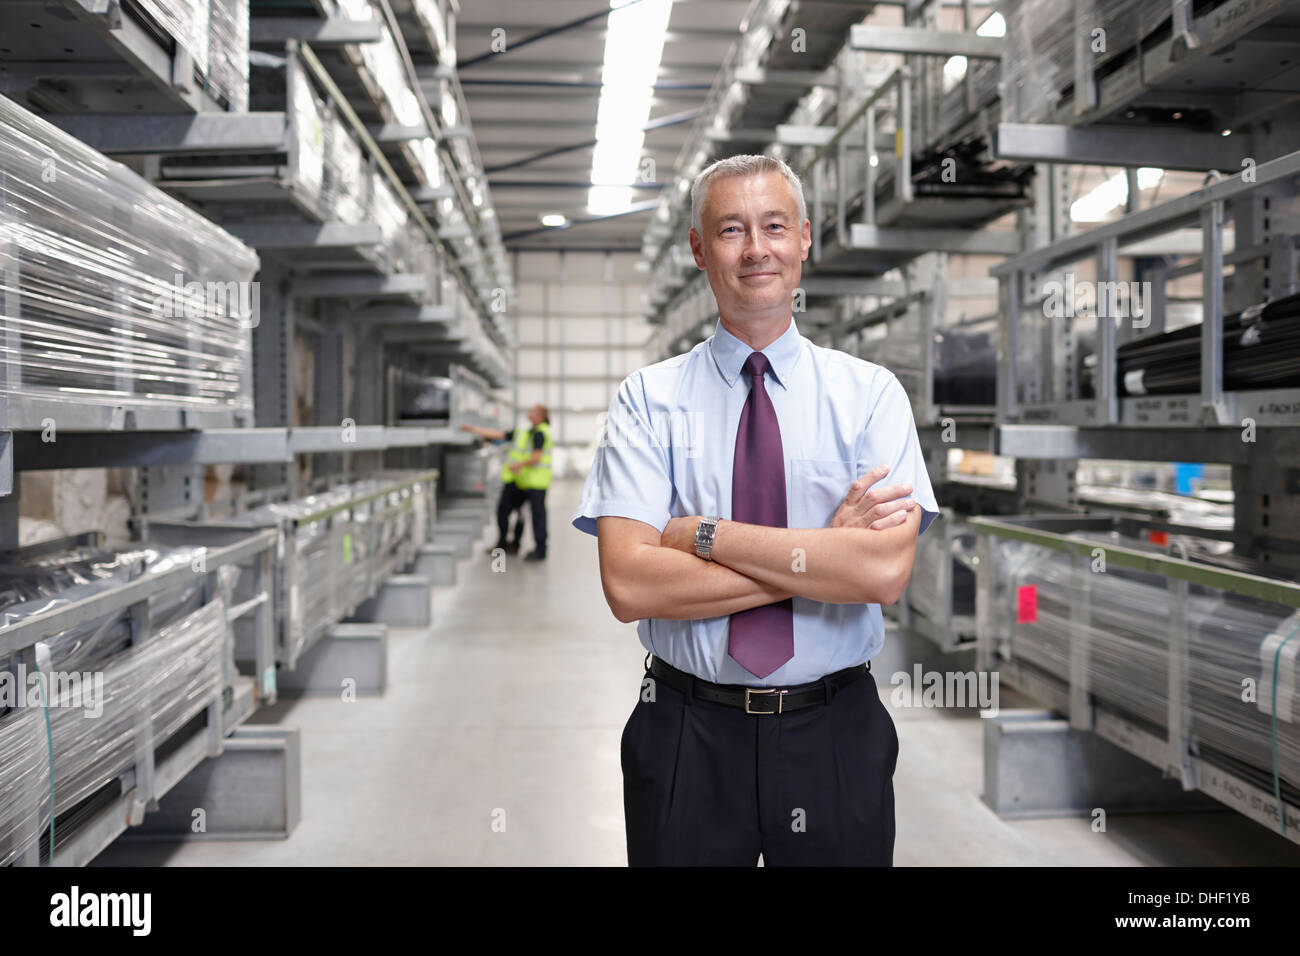 Portrait of manager in engineering warehouse - Stock Image